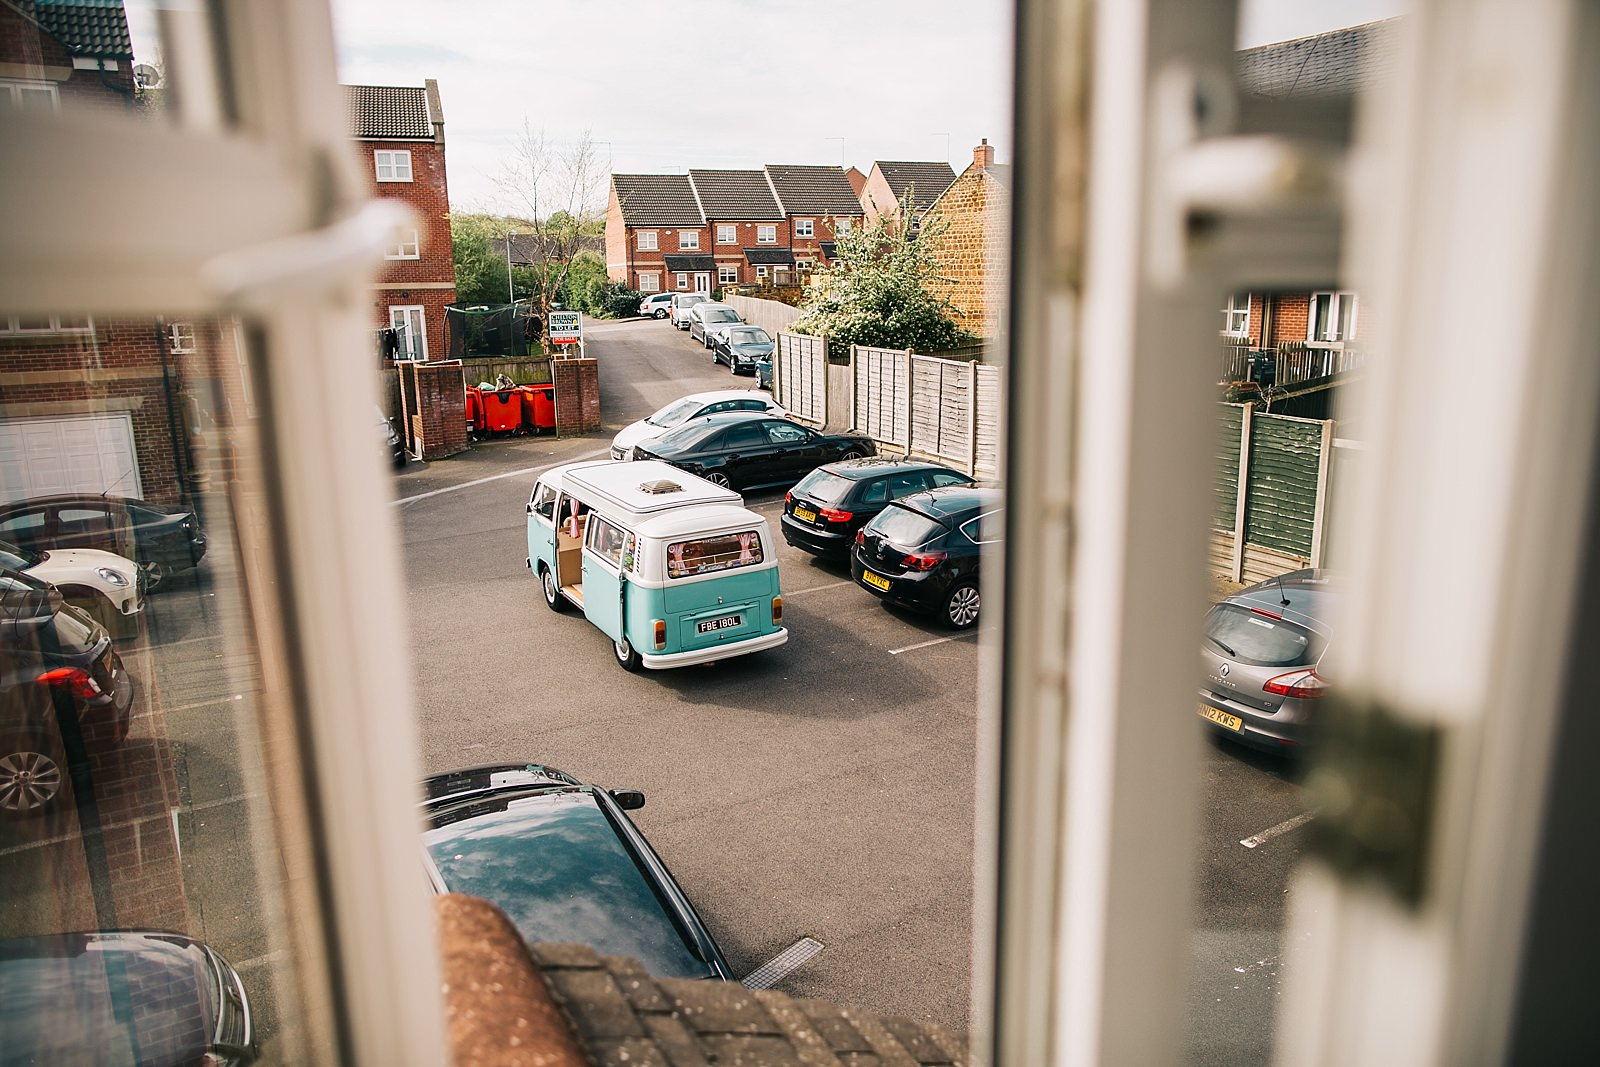 photo of a mint camper van from the window